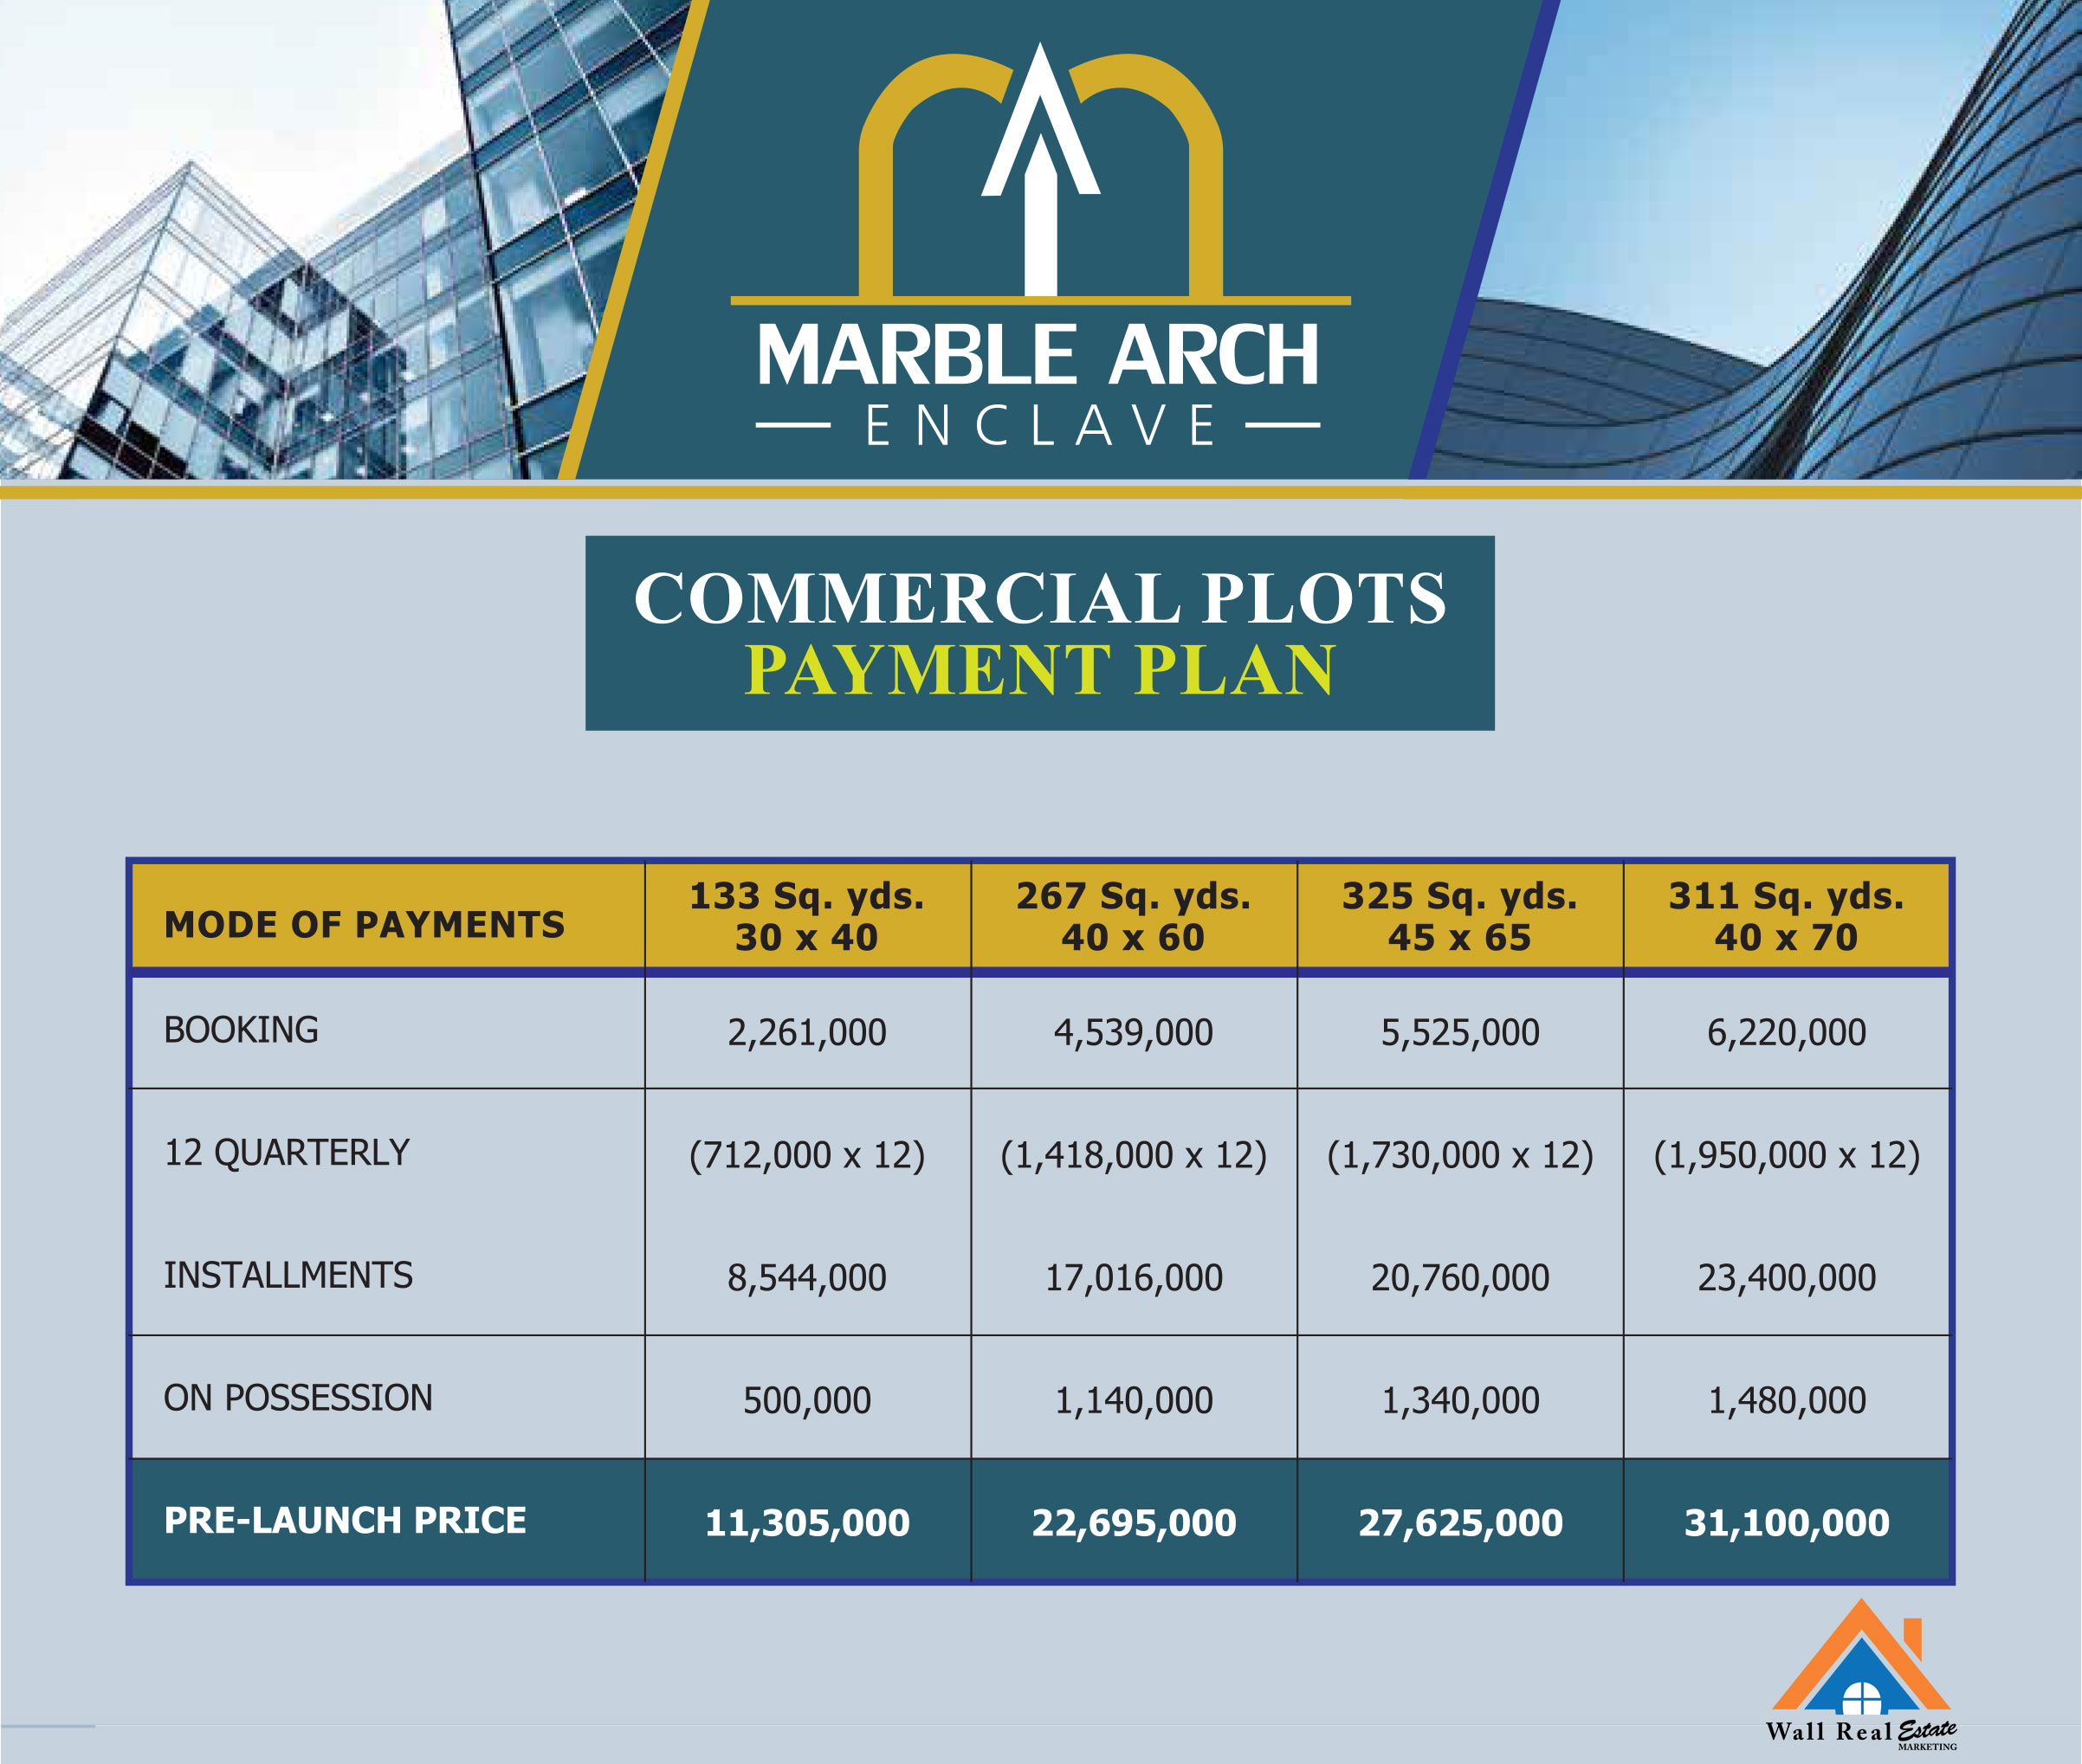 Marble-Arch-Enclave-Commercial-Plots-Payment-Plan